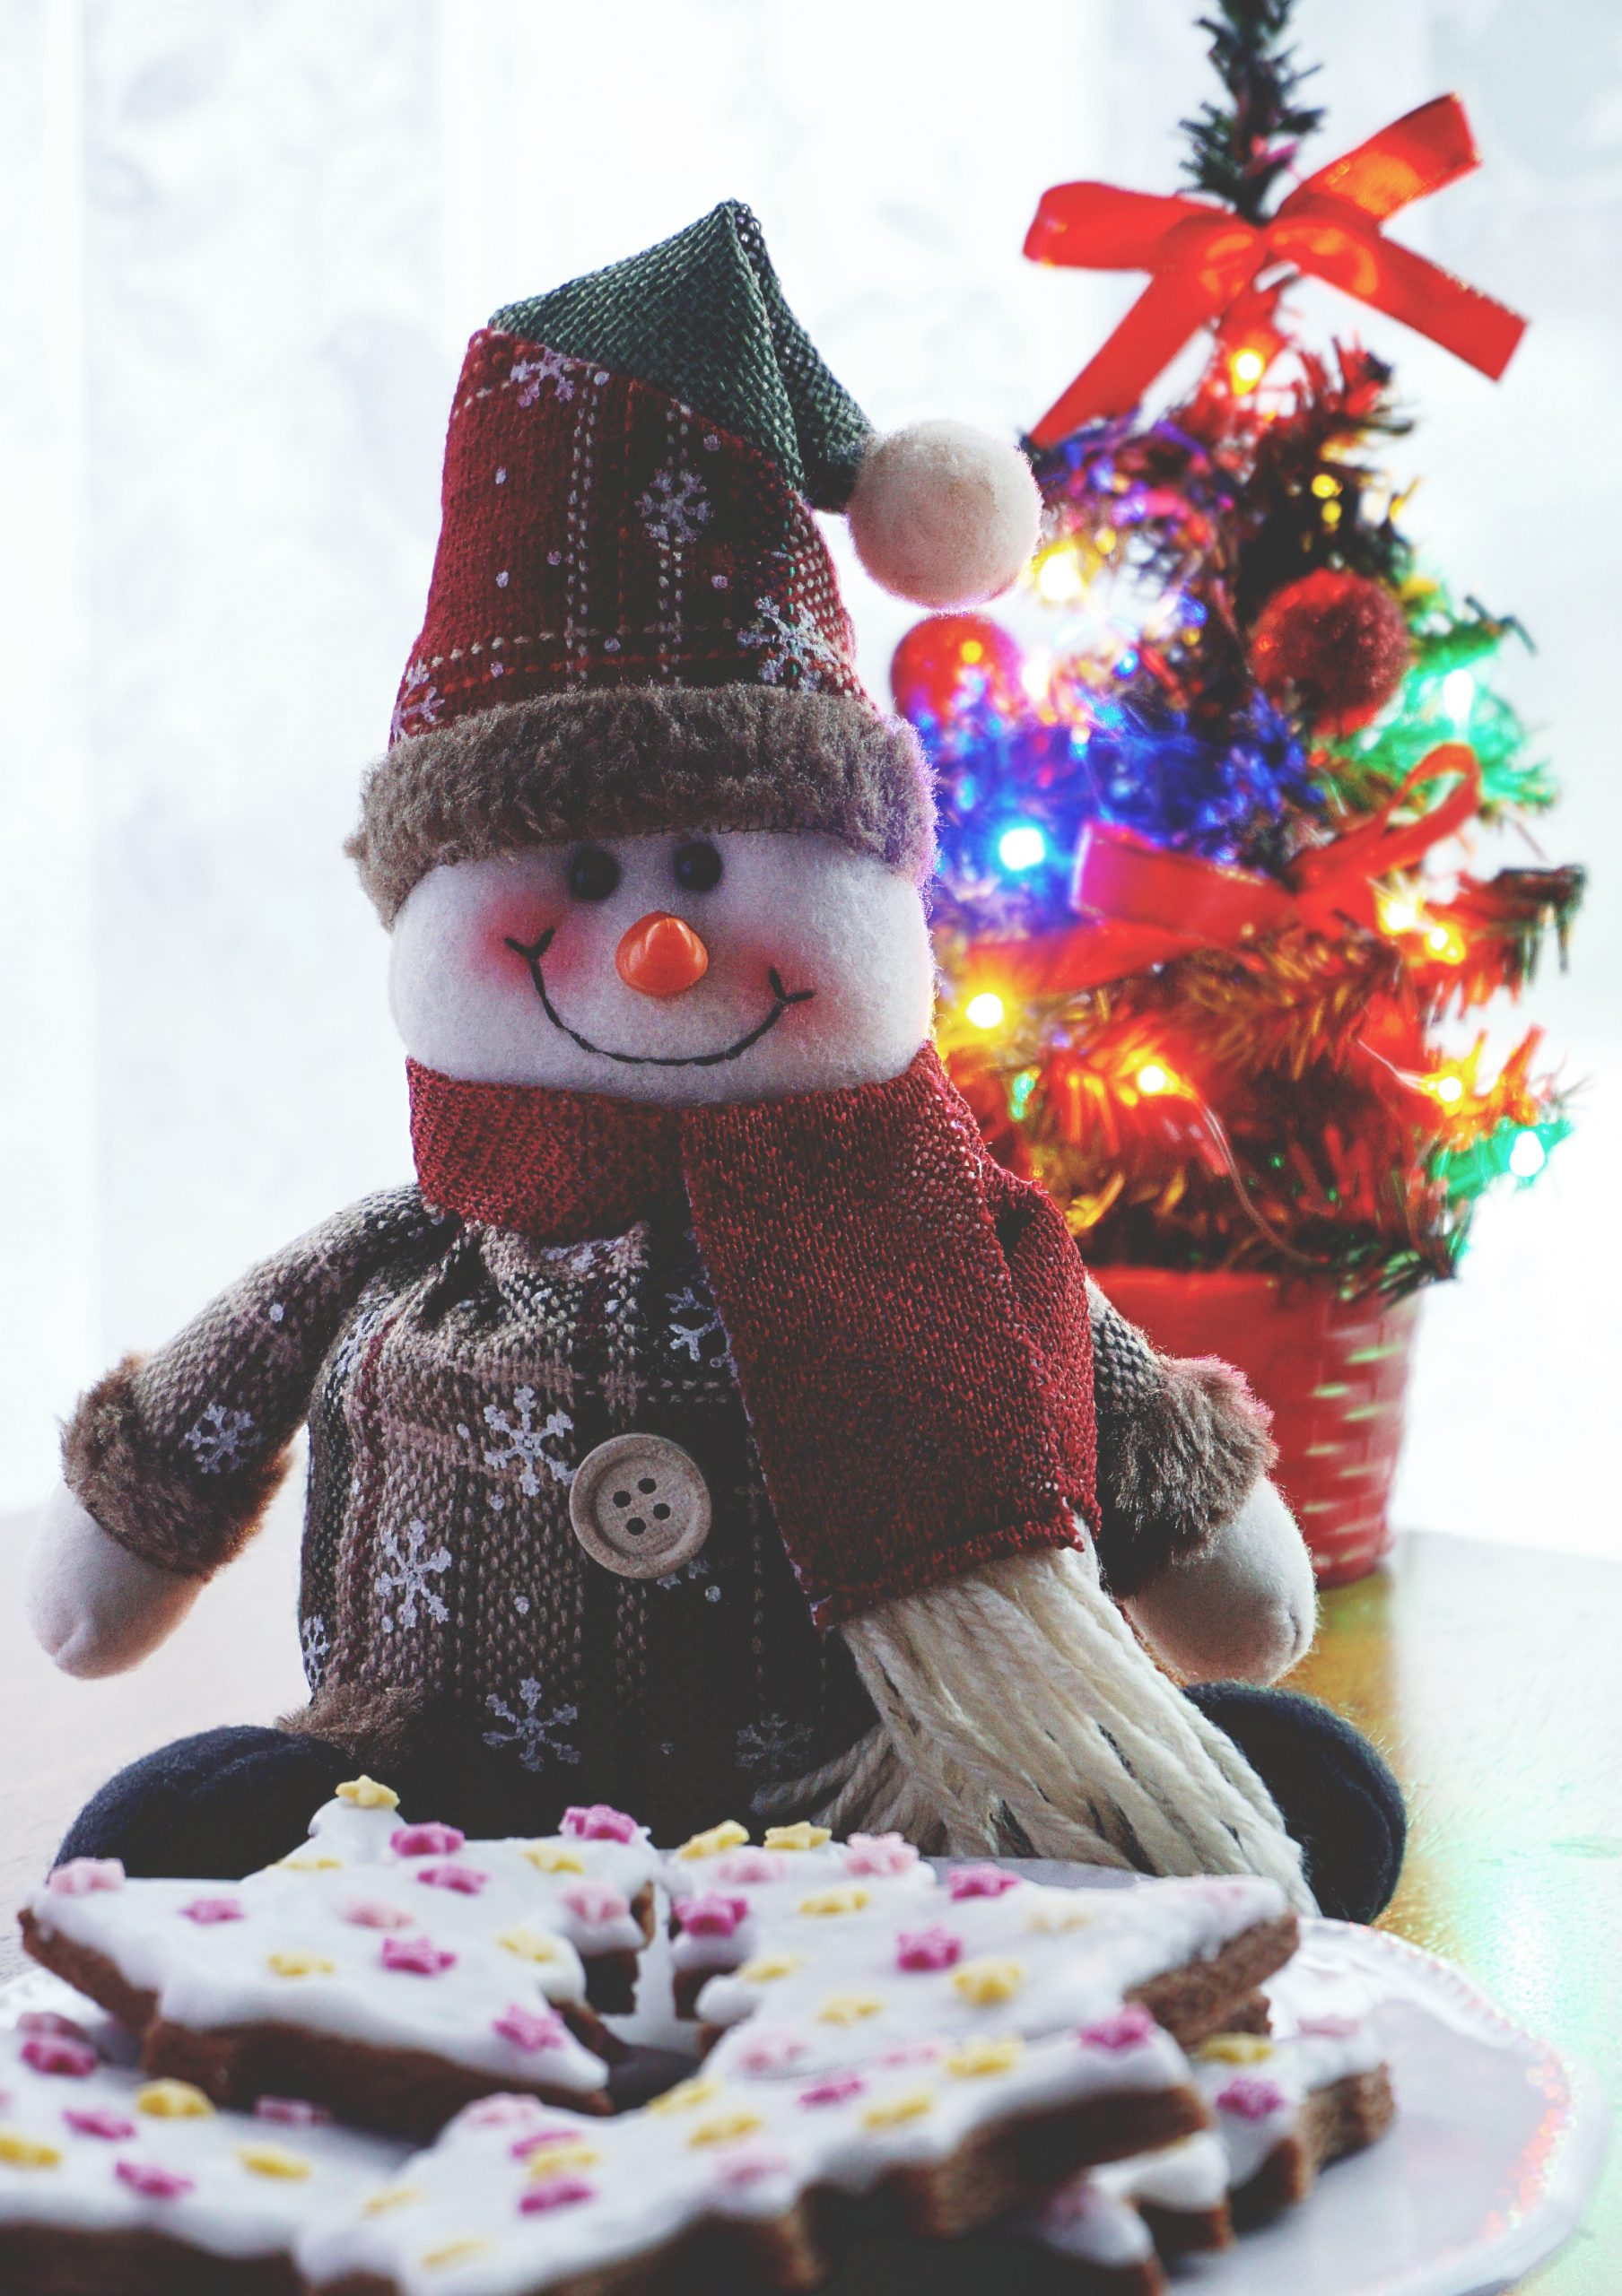 An iPhone wallpaper of a dressed up snowman with a hat and shawl